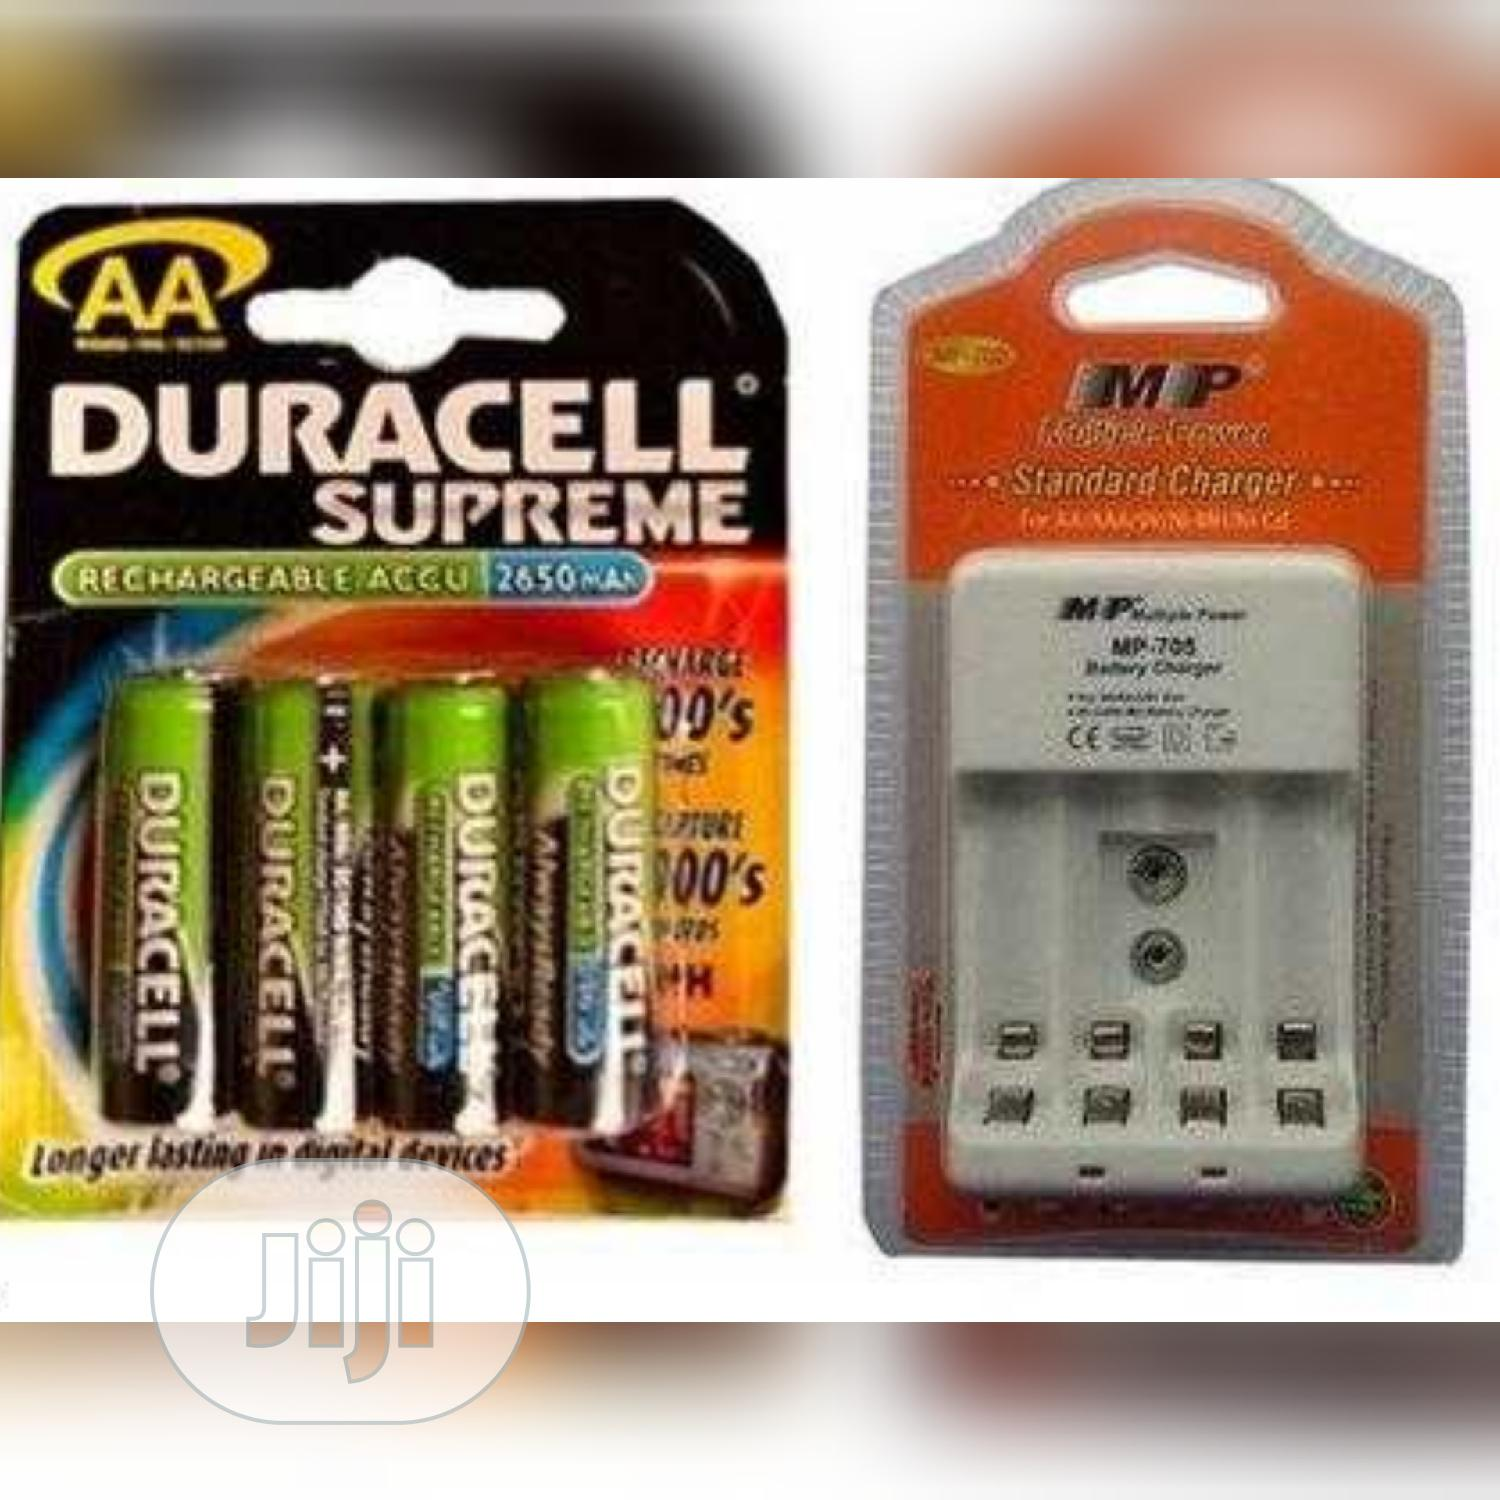 Duracell Rechargeable Battery And Charger